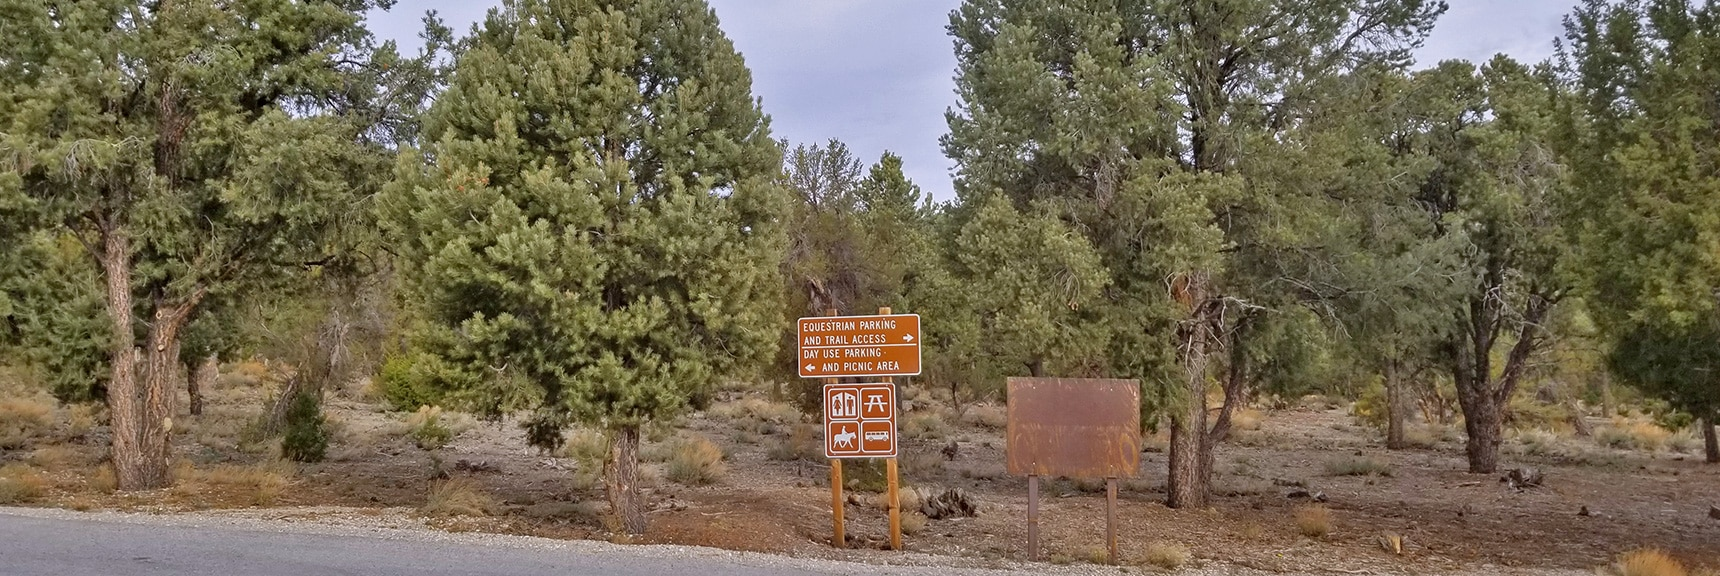 Left Turn to Hiker's Trailhead Parking Area for Sawmill Loop Trail   Sawmill Trail to McFarland Peak   Spring Mountains, Nevada